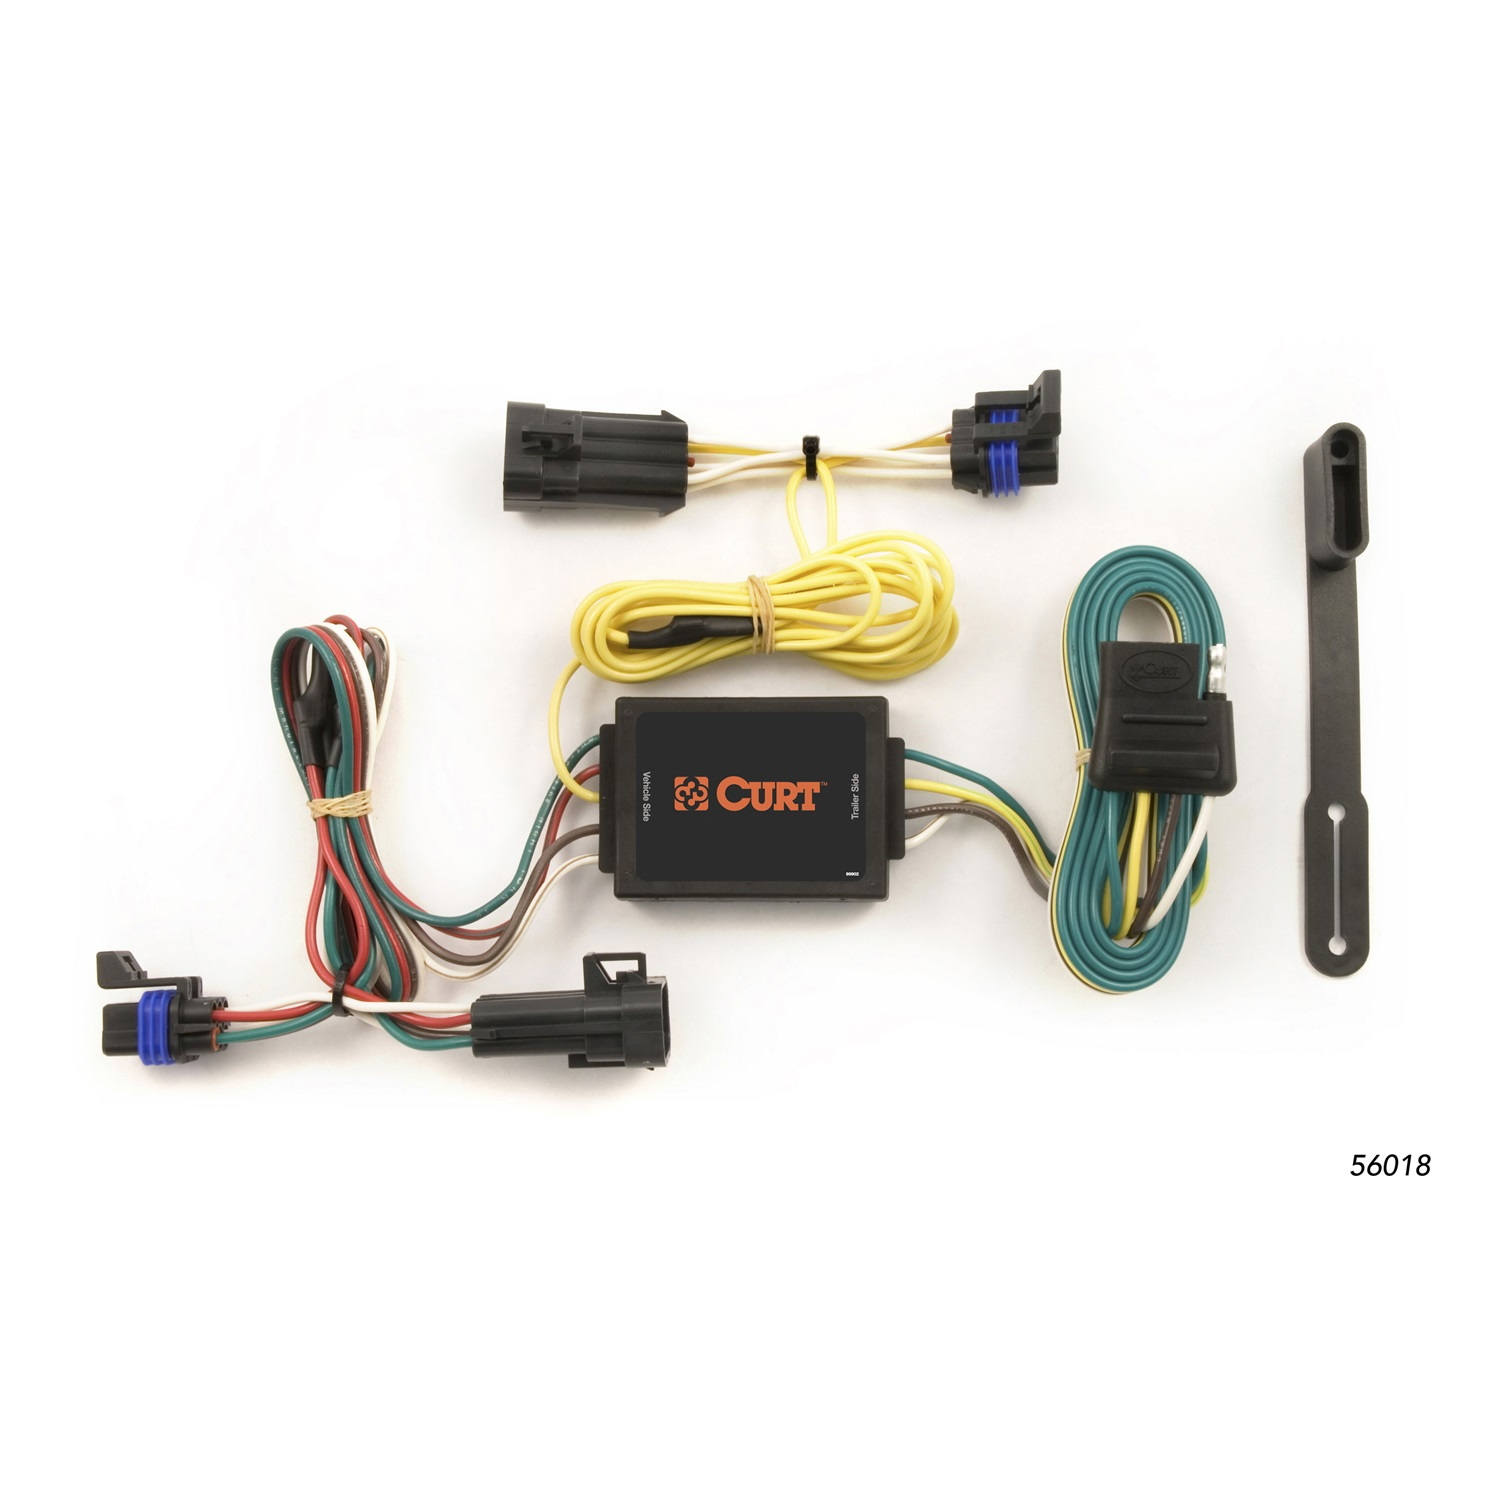 curt trailer hitch amp vehicle wiring harness fits saturn curt trailer hitch amp vehicle wiring harness fits